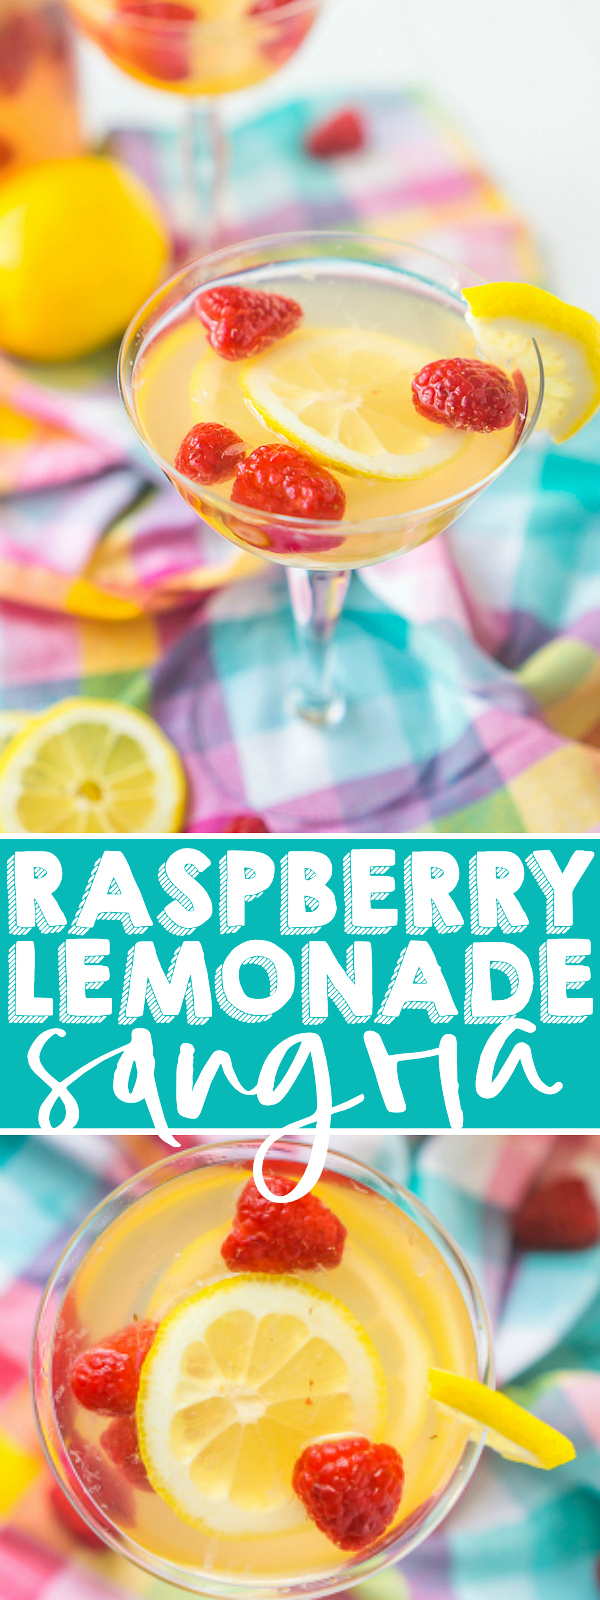 Raspberry Lemonade Sangria is a sweet and tart summer cocktail recipe that you are going to love! This white wine sangria is super easy to make for any summer hosting and super easy to customize, too, if you don't like raspberry! | THE LOVE NERDS #winecocktail #summersangria #lemonadecocktail